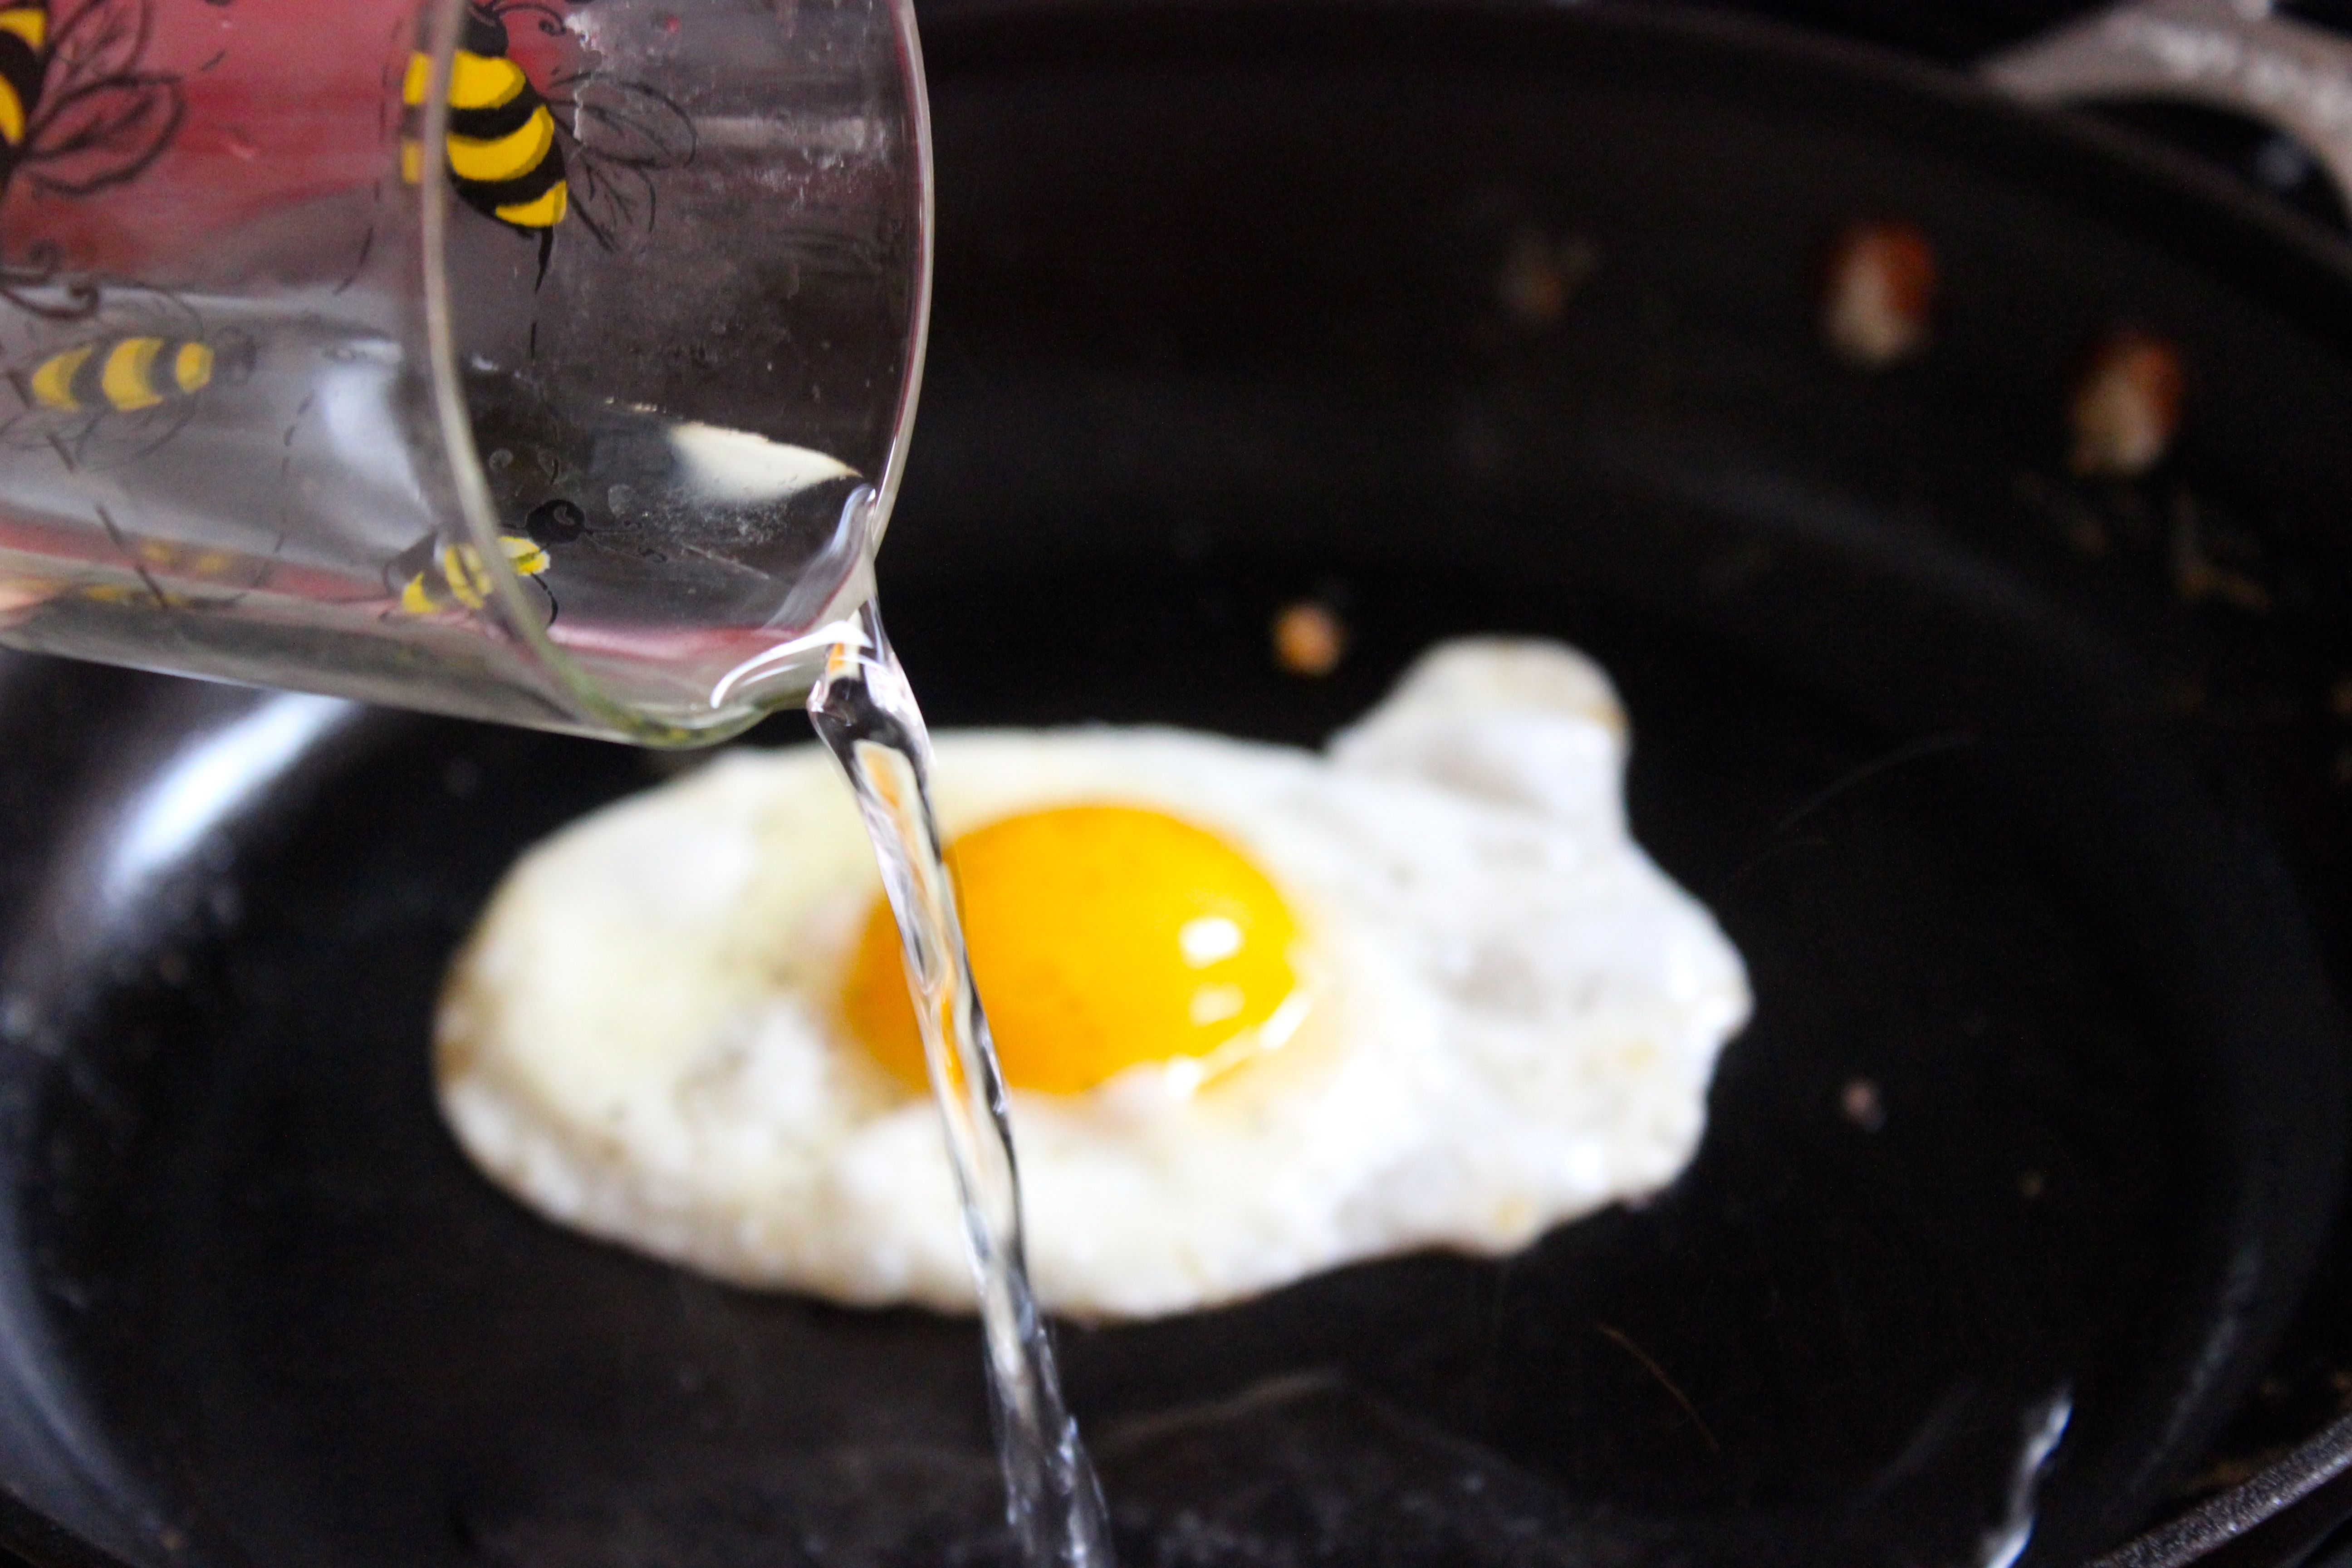 How To Fry An Egg How To Cook Eggs Over Easy Eggs Perfect Fried Egg